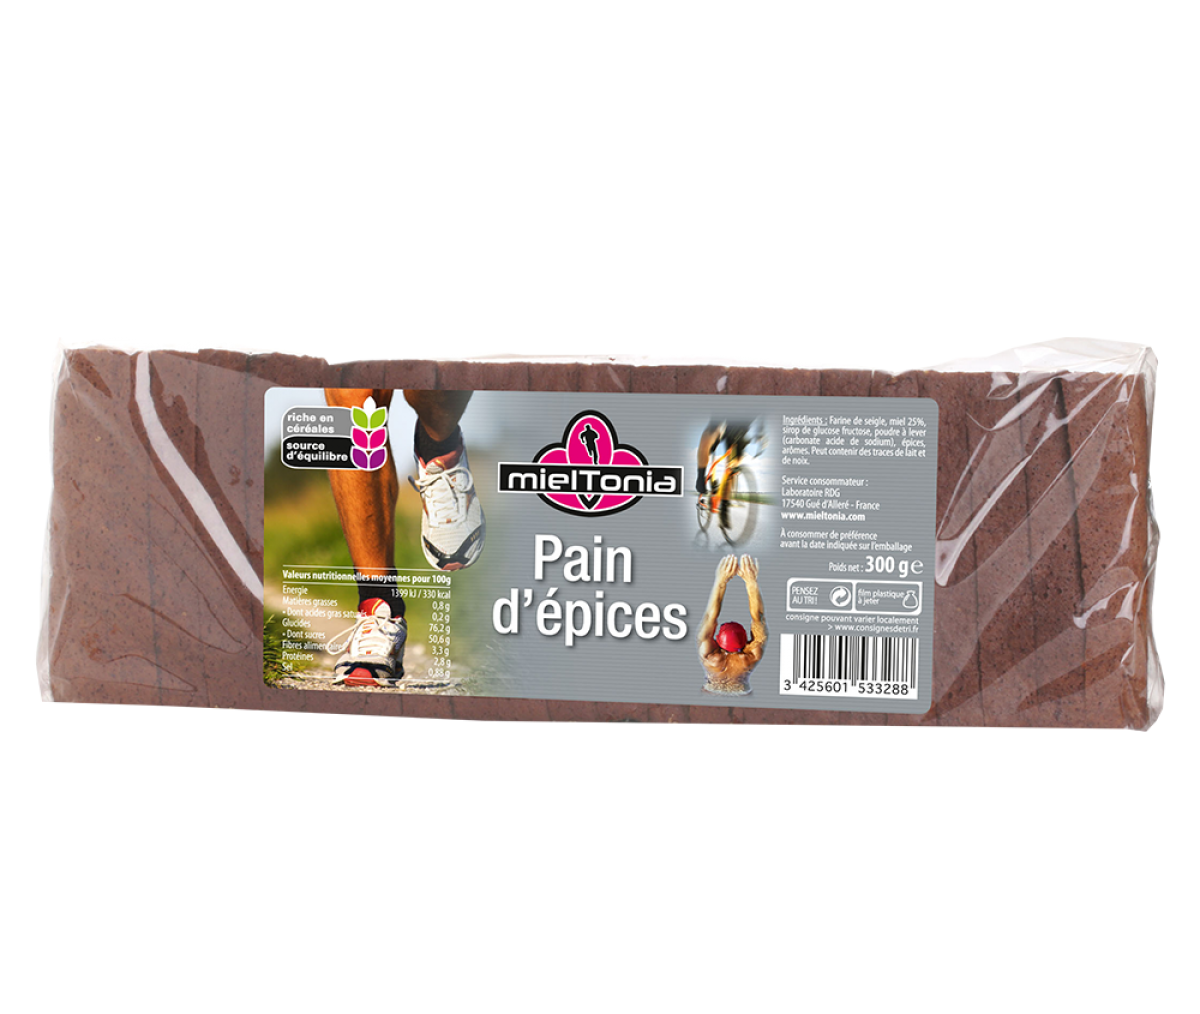 miel tonia pain epices sportif